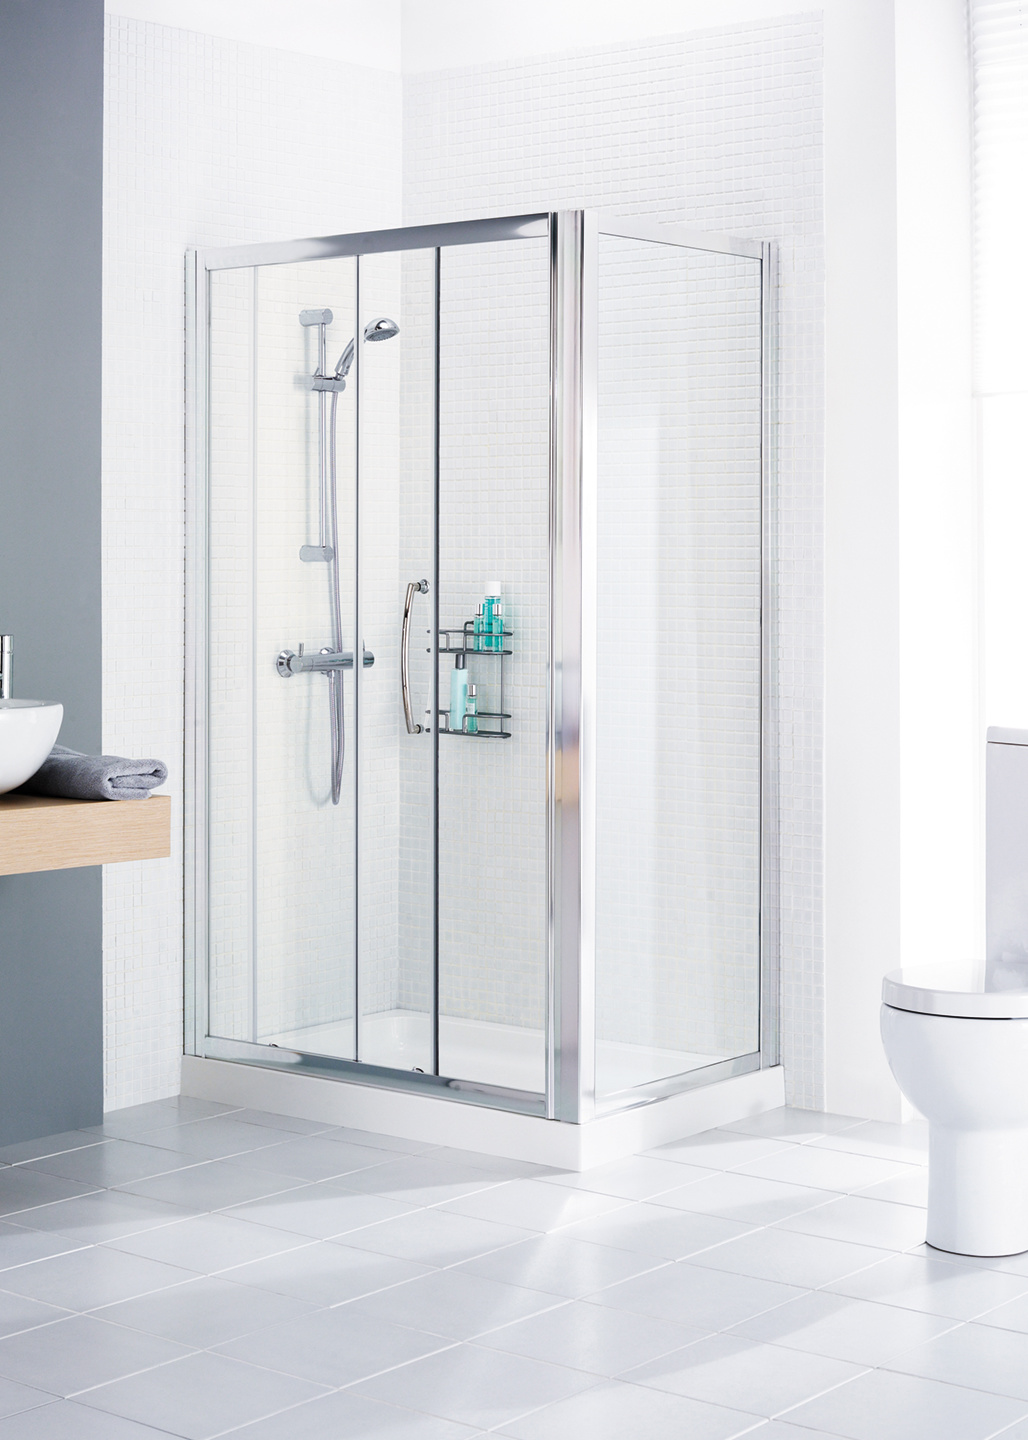 Side panel shown in situ in a framed slider door shower enclosure